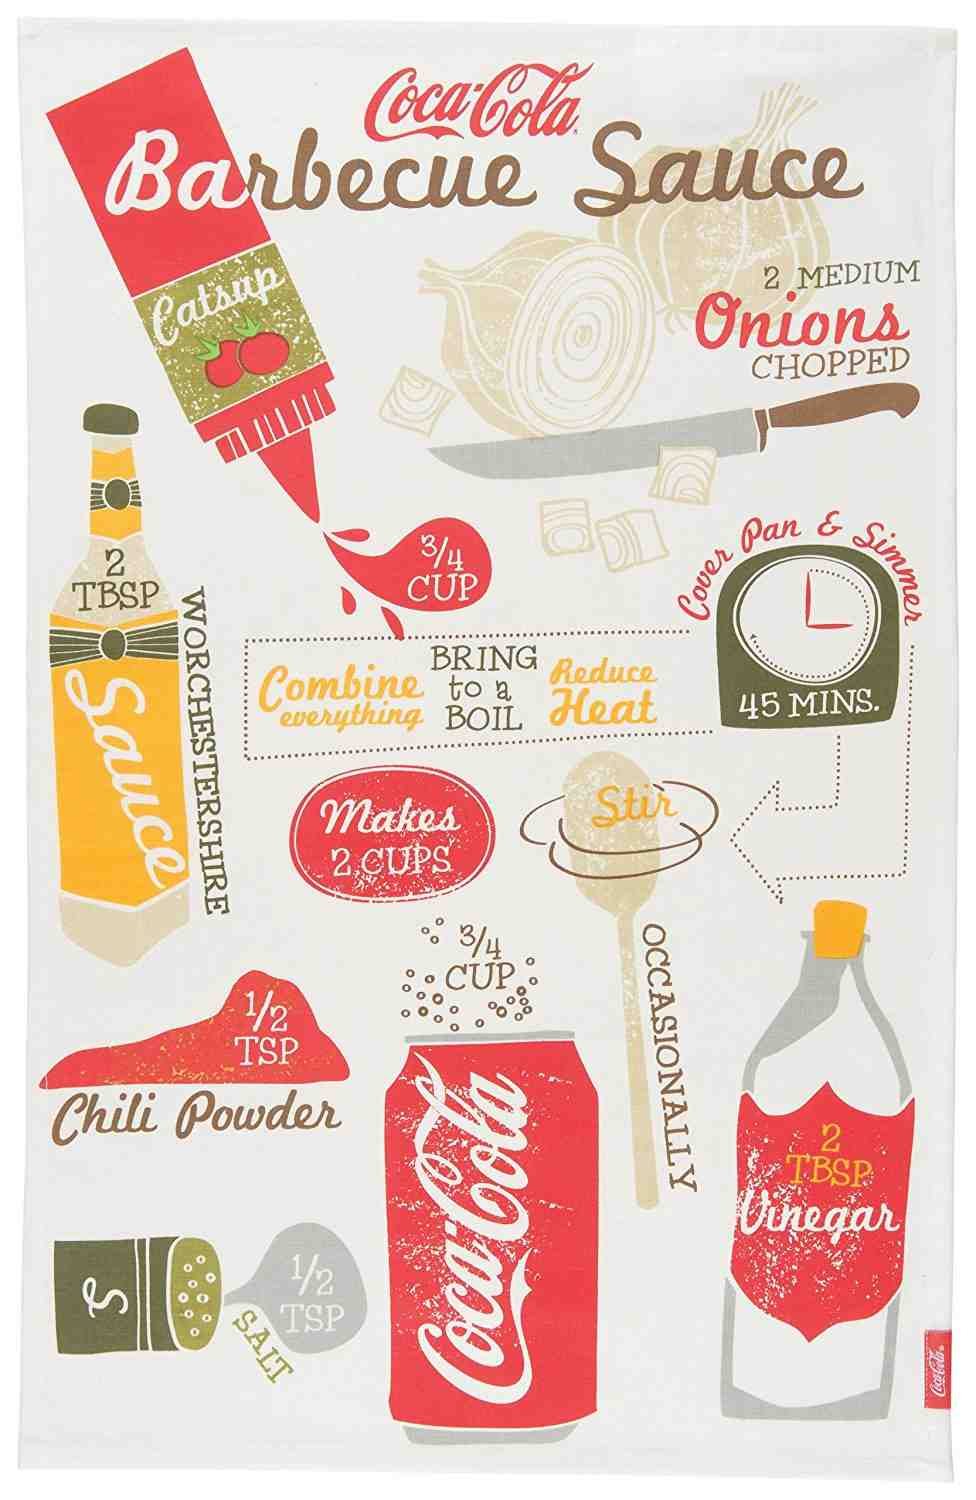 Coca Cola Dish Towel | BBQ Sauce Recipe